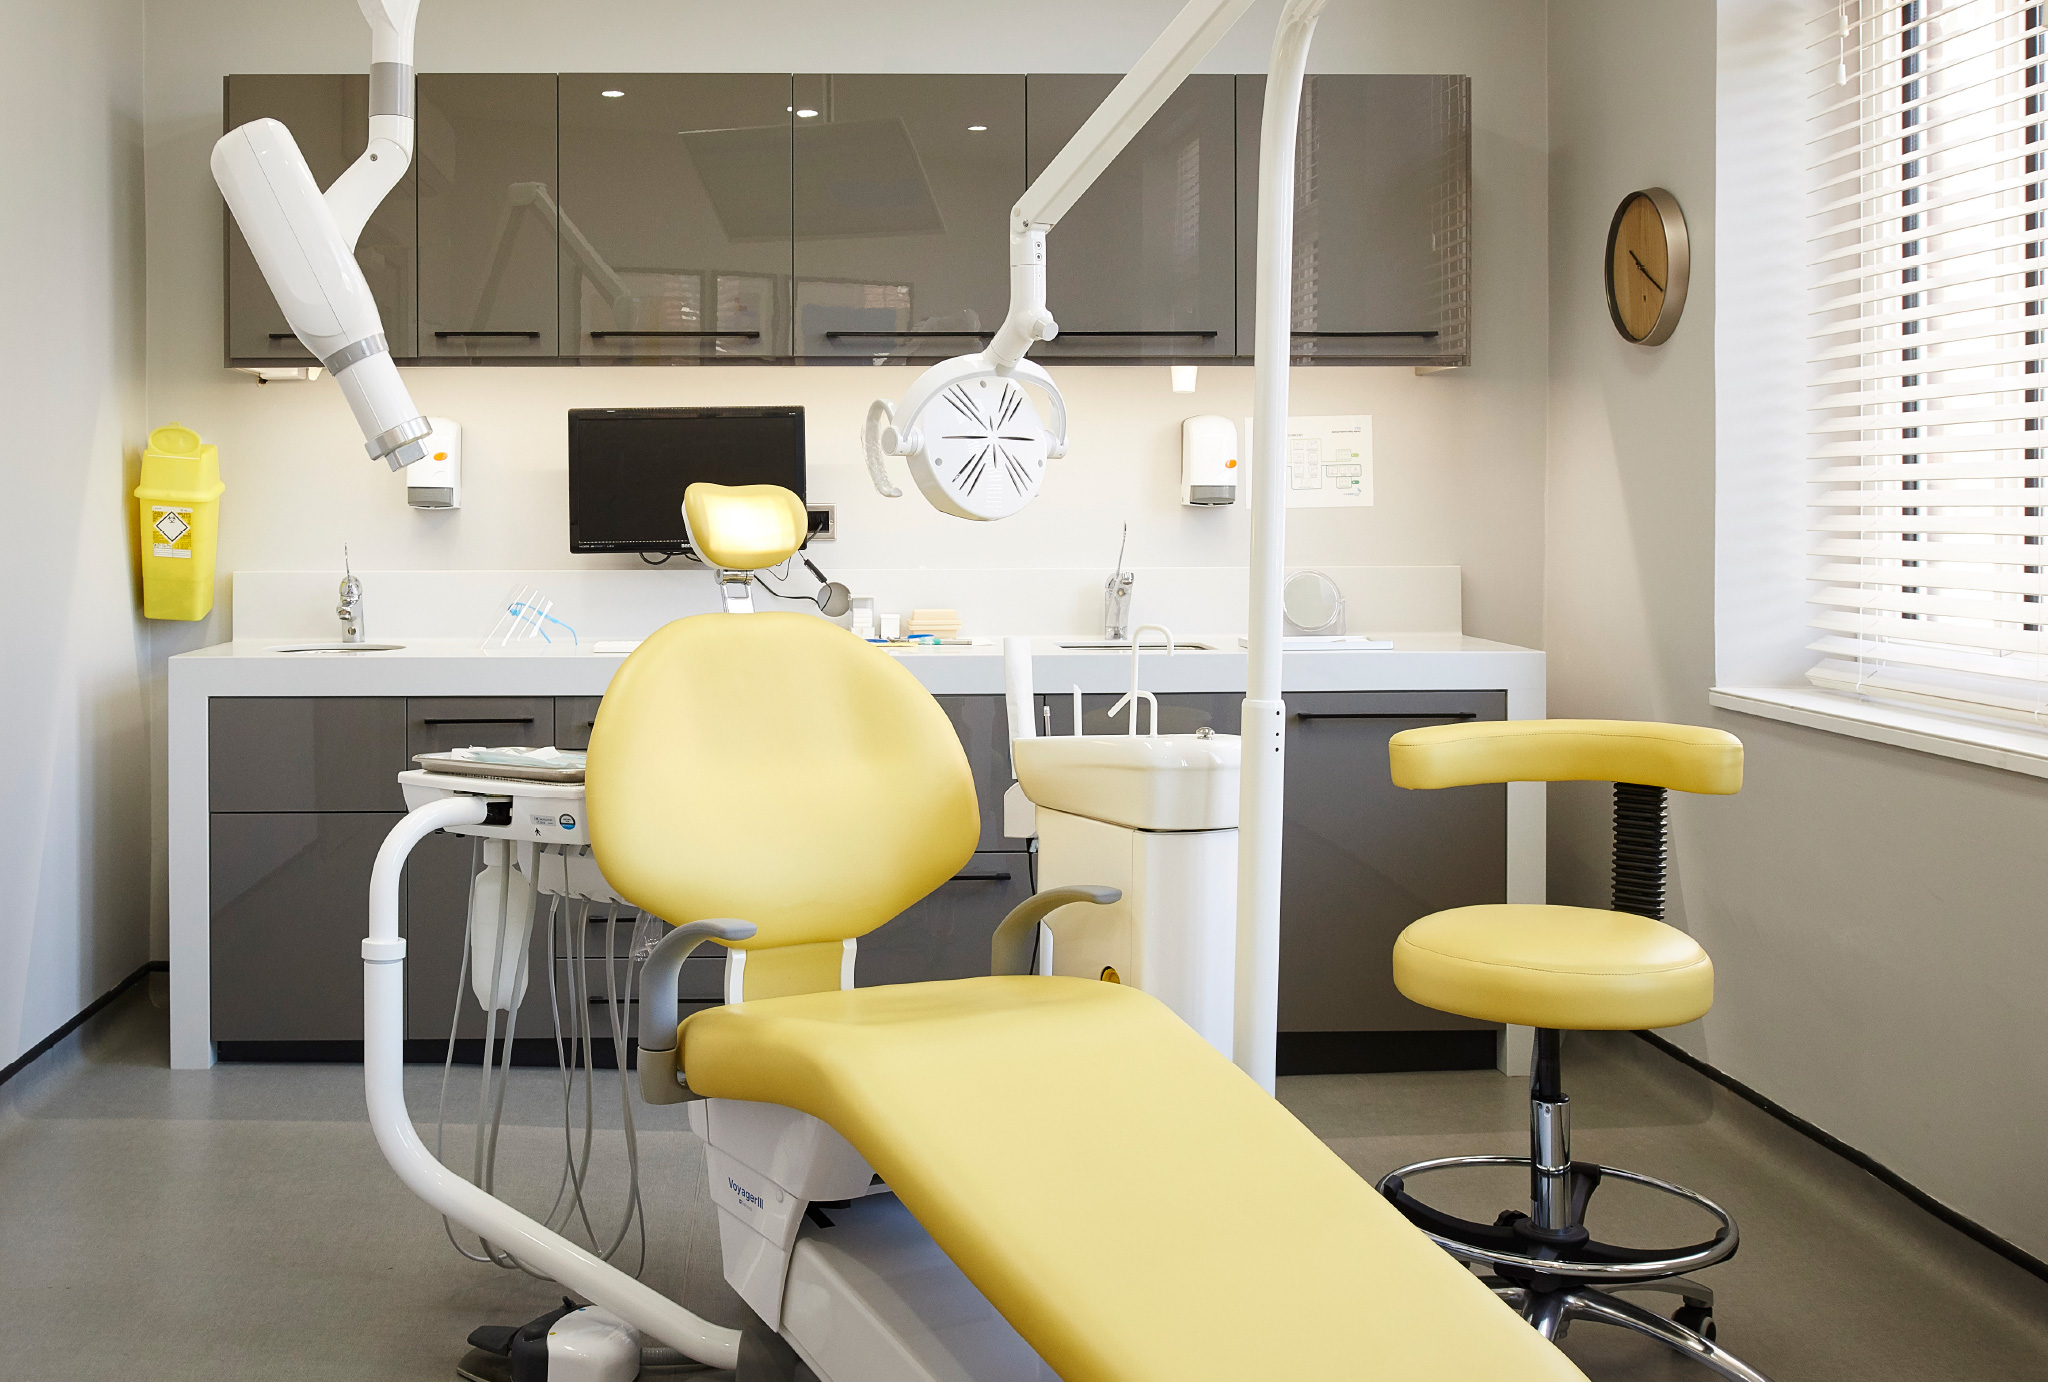 yellow dentist chair in front of a dark grey counter